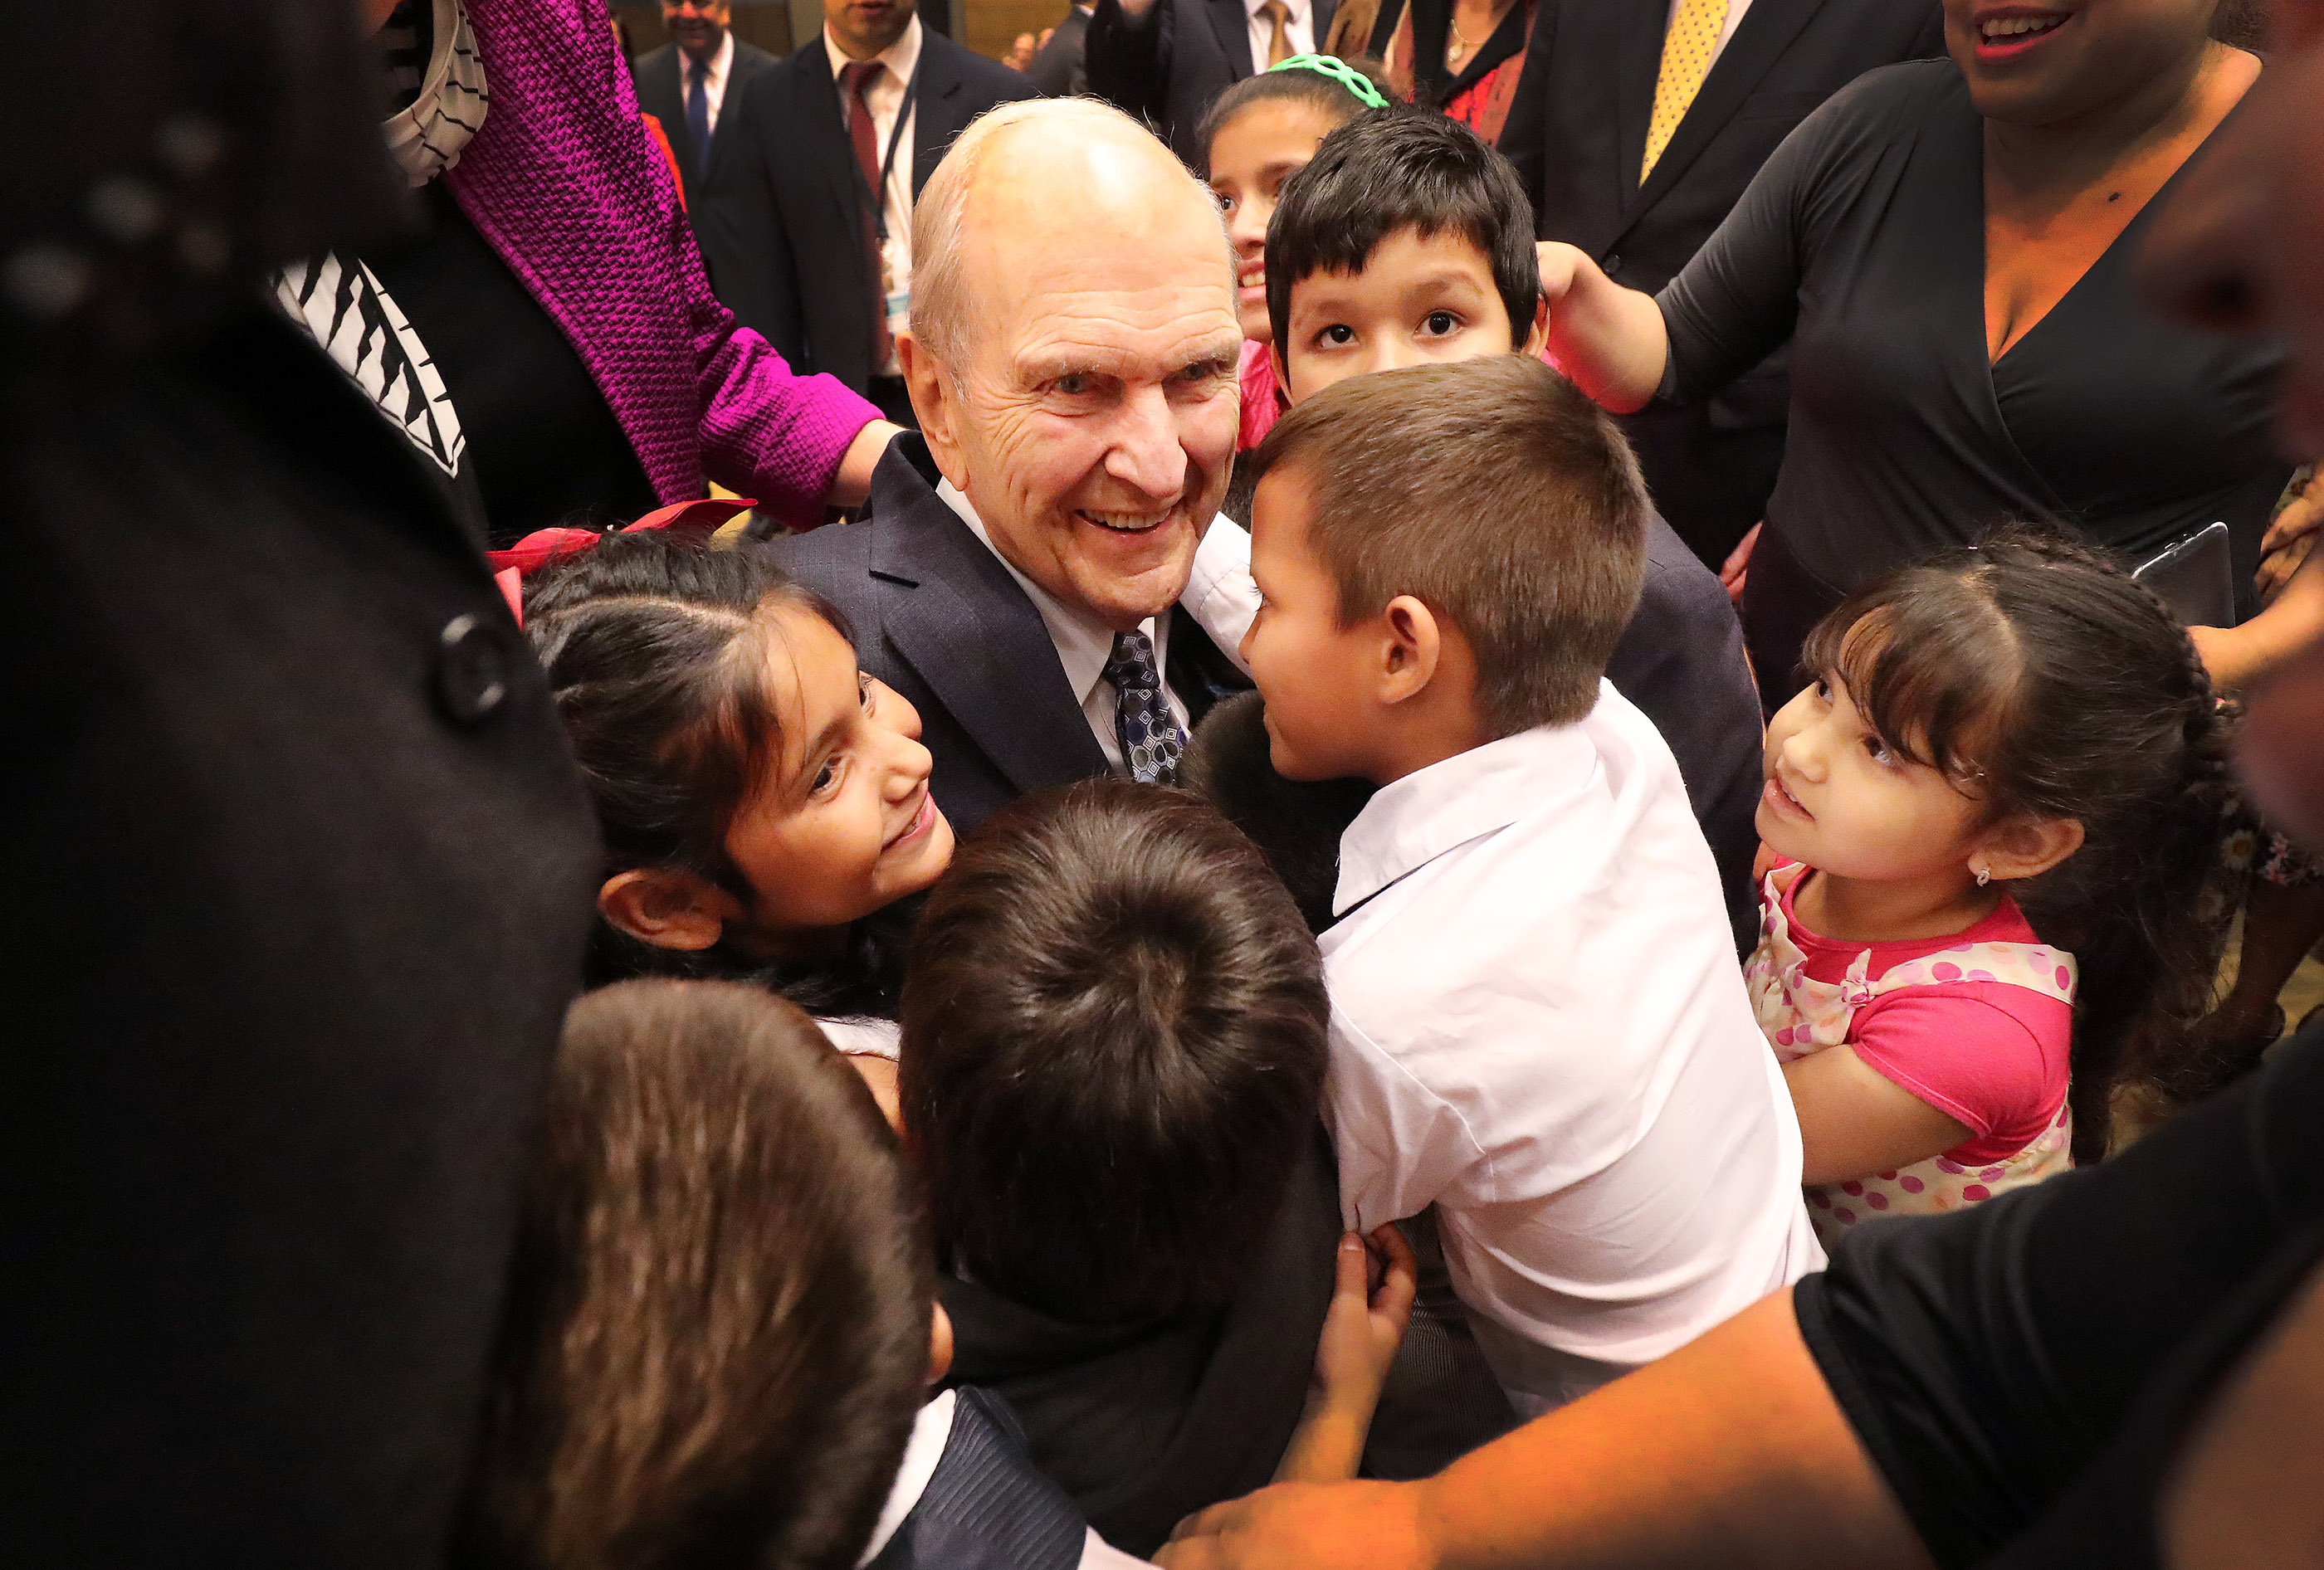 President Russell M. Nelson of The Church of Jesus Christ of Latter-day Saints hugs children after a devotional in Asuncion, Paraguay on Monday, Oct. 22, 2018.